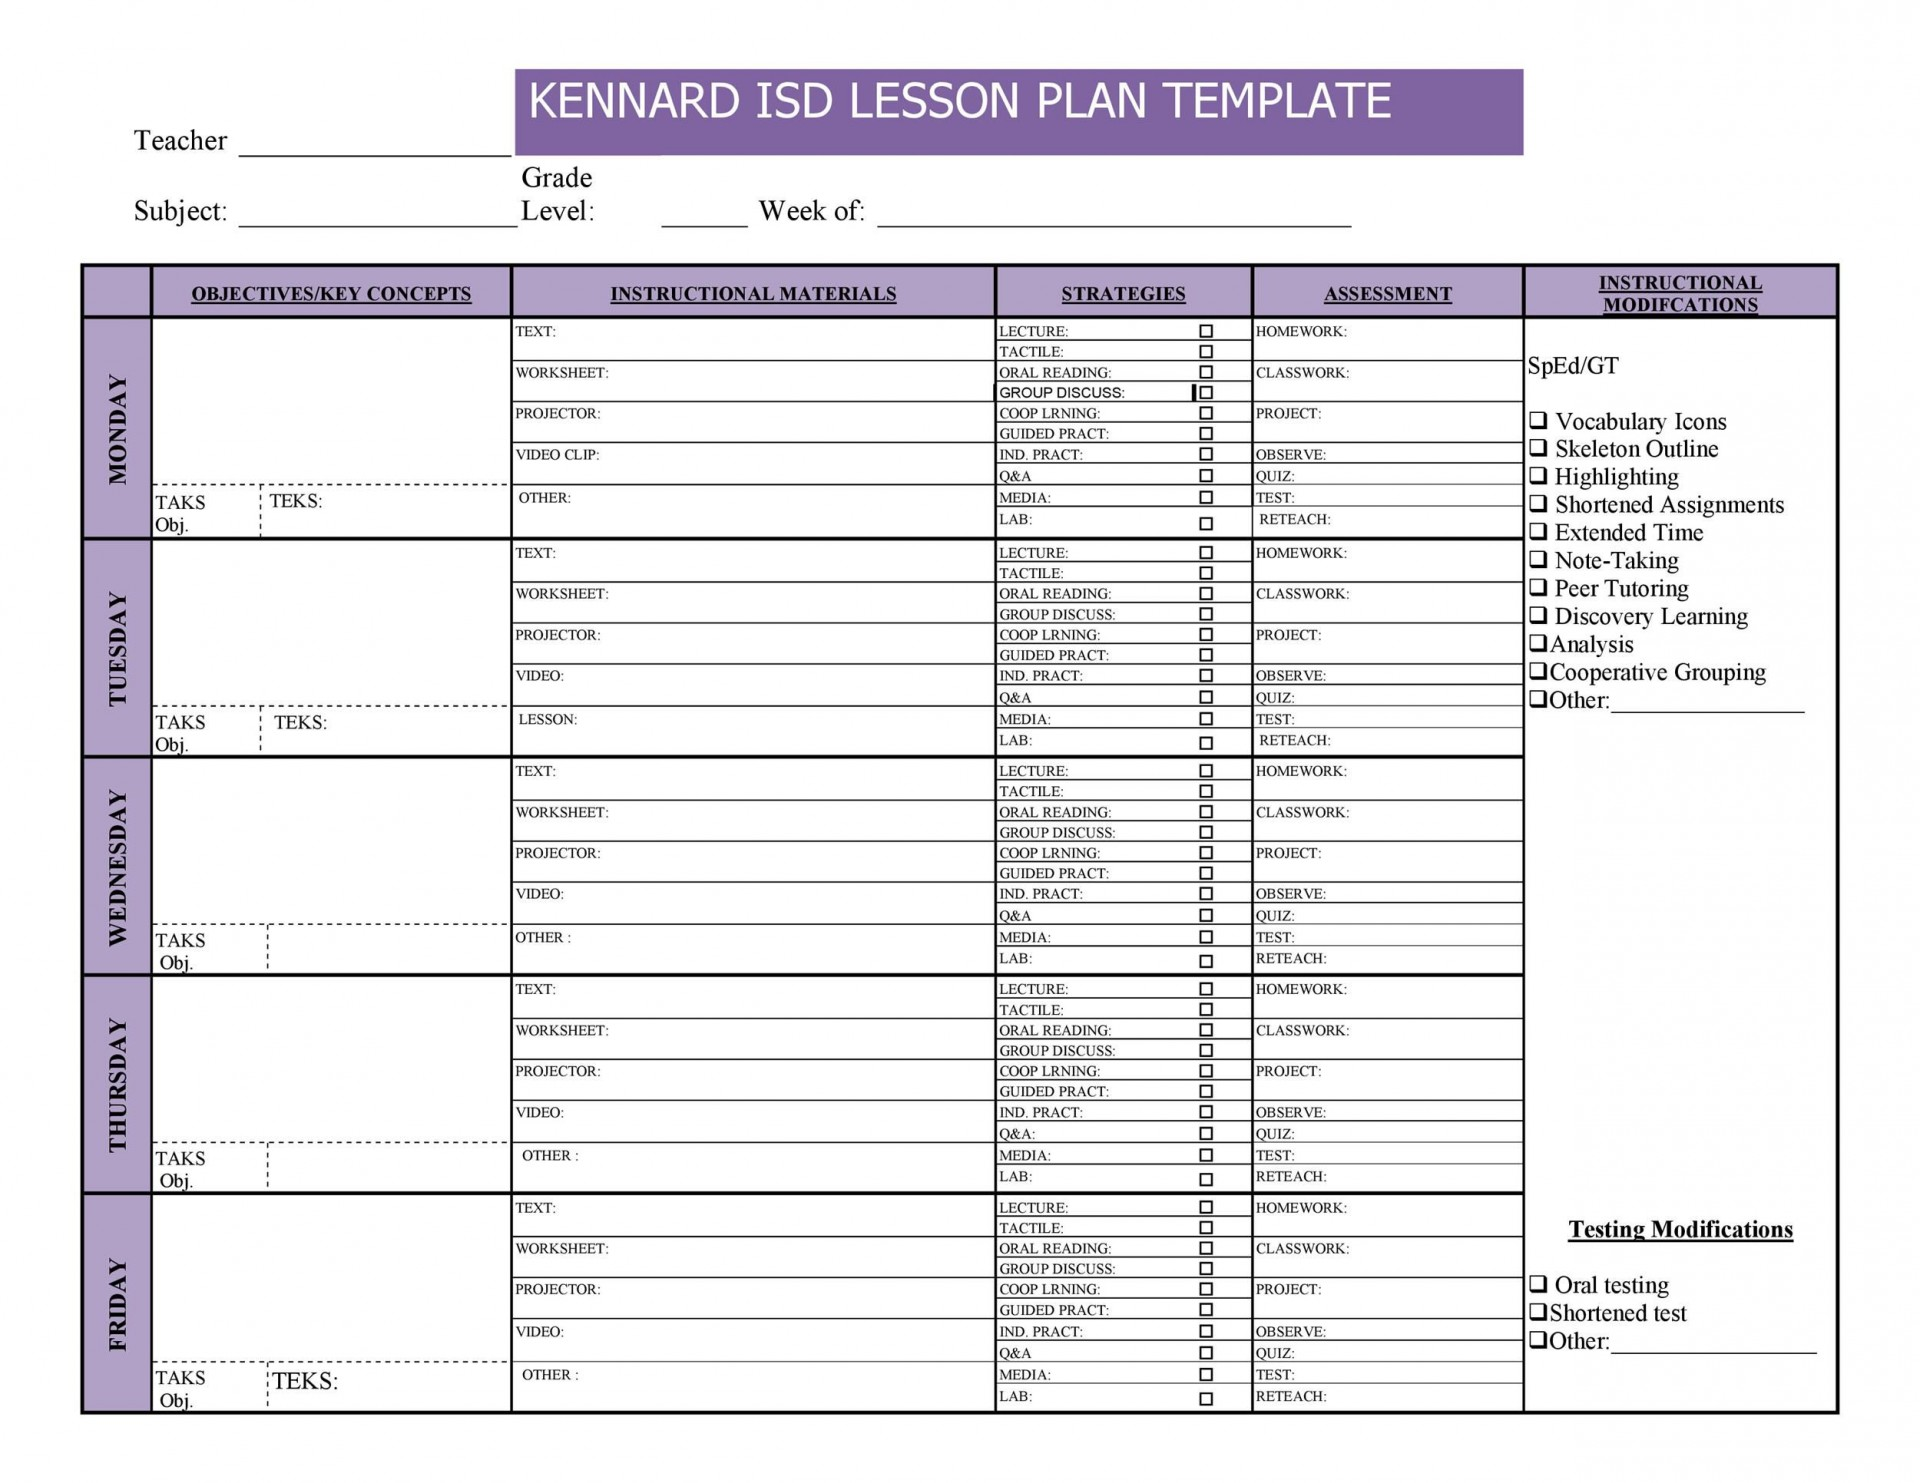 007 Staggering Free Printable Lesson Plan Template Blank Inspiration  Format1920